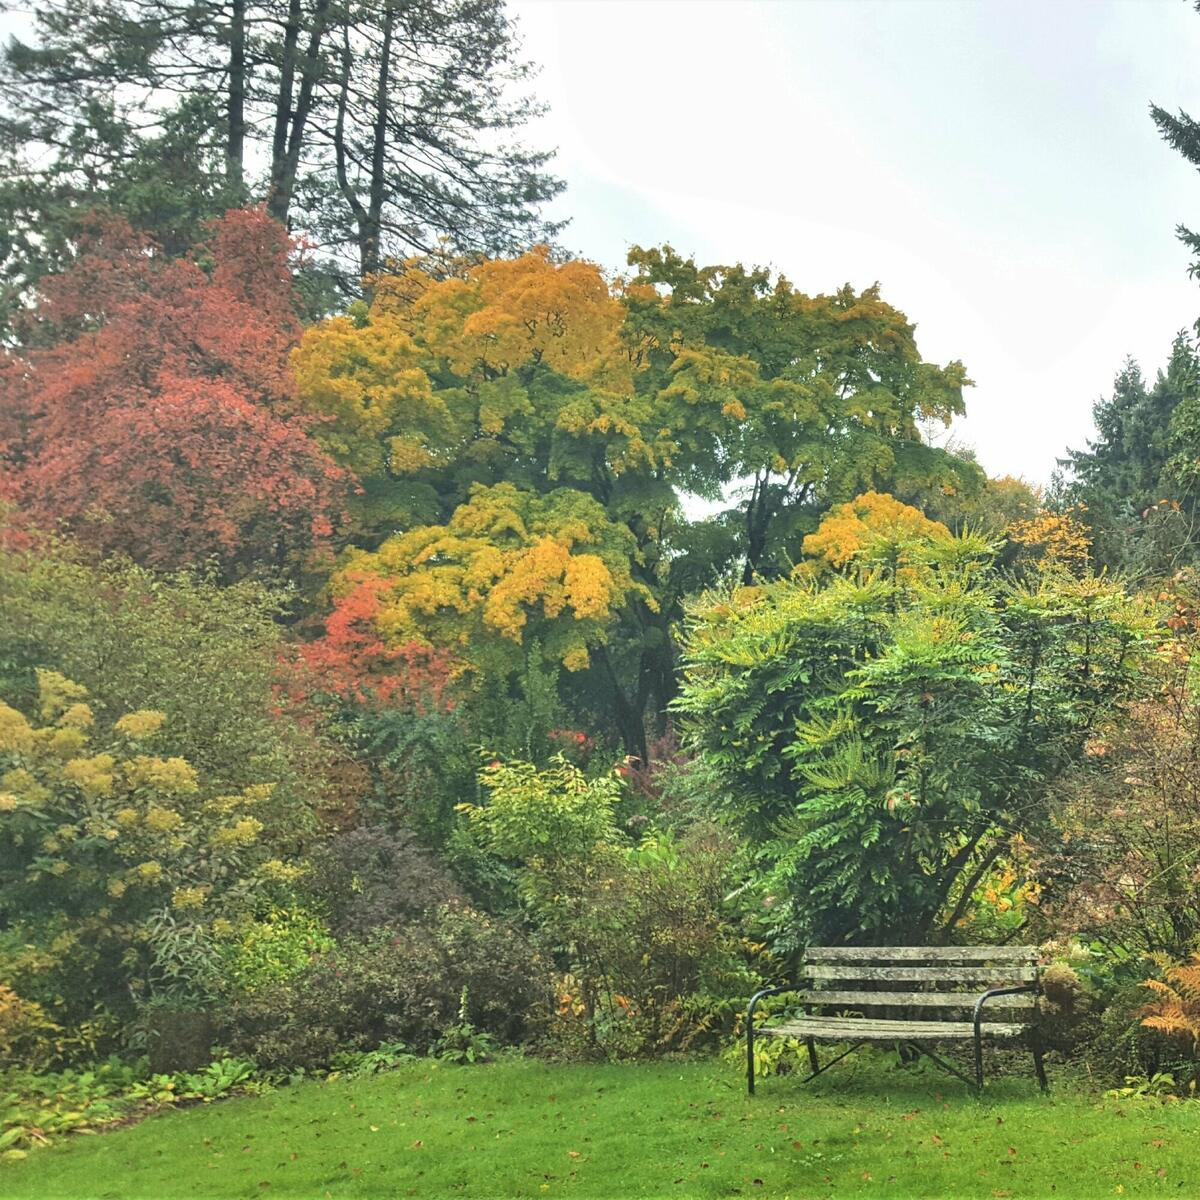 Some trees and shrubs in autumn